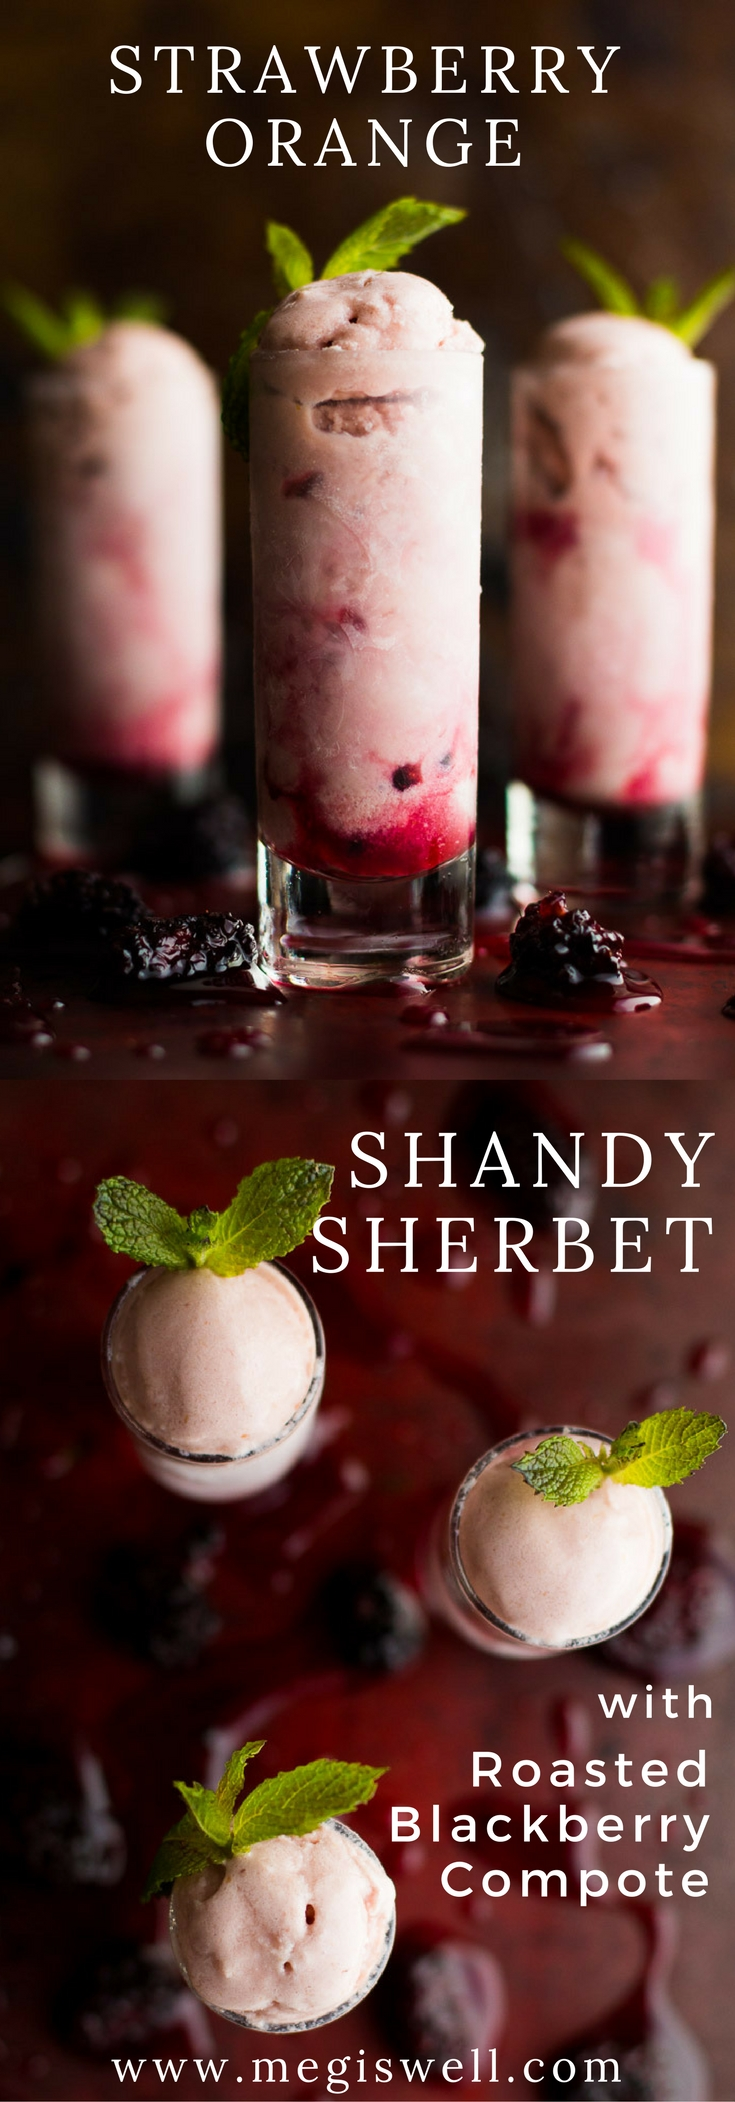 Strawberry Orange Shandy Sherbet combines a shandy beer punch, fresh fruit, and sweetened condensed milk for a great summertime icy treat. | www.megiswell.com